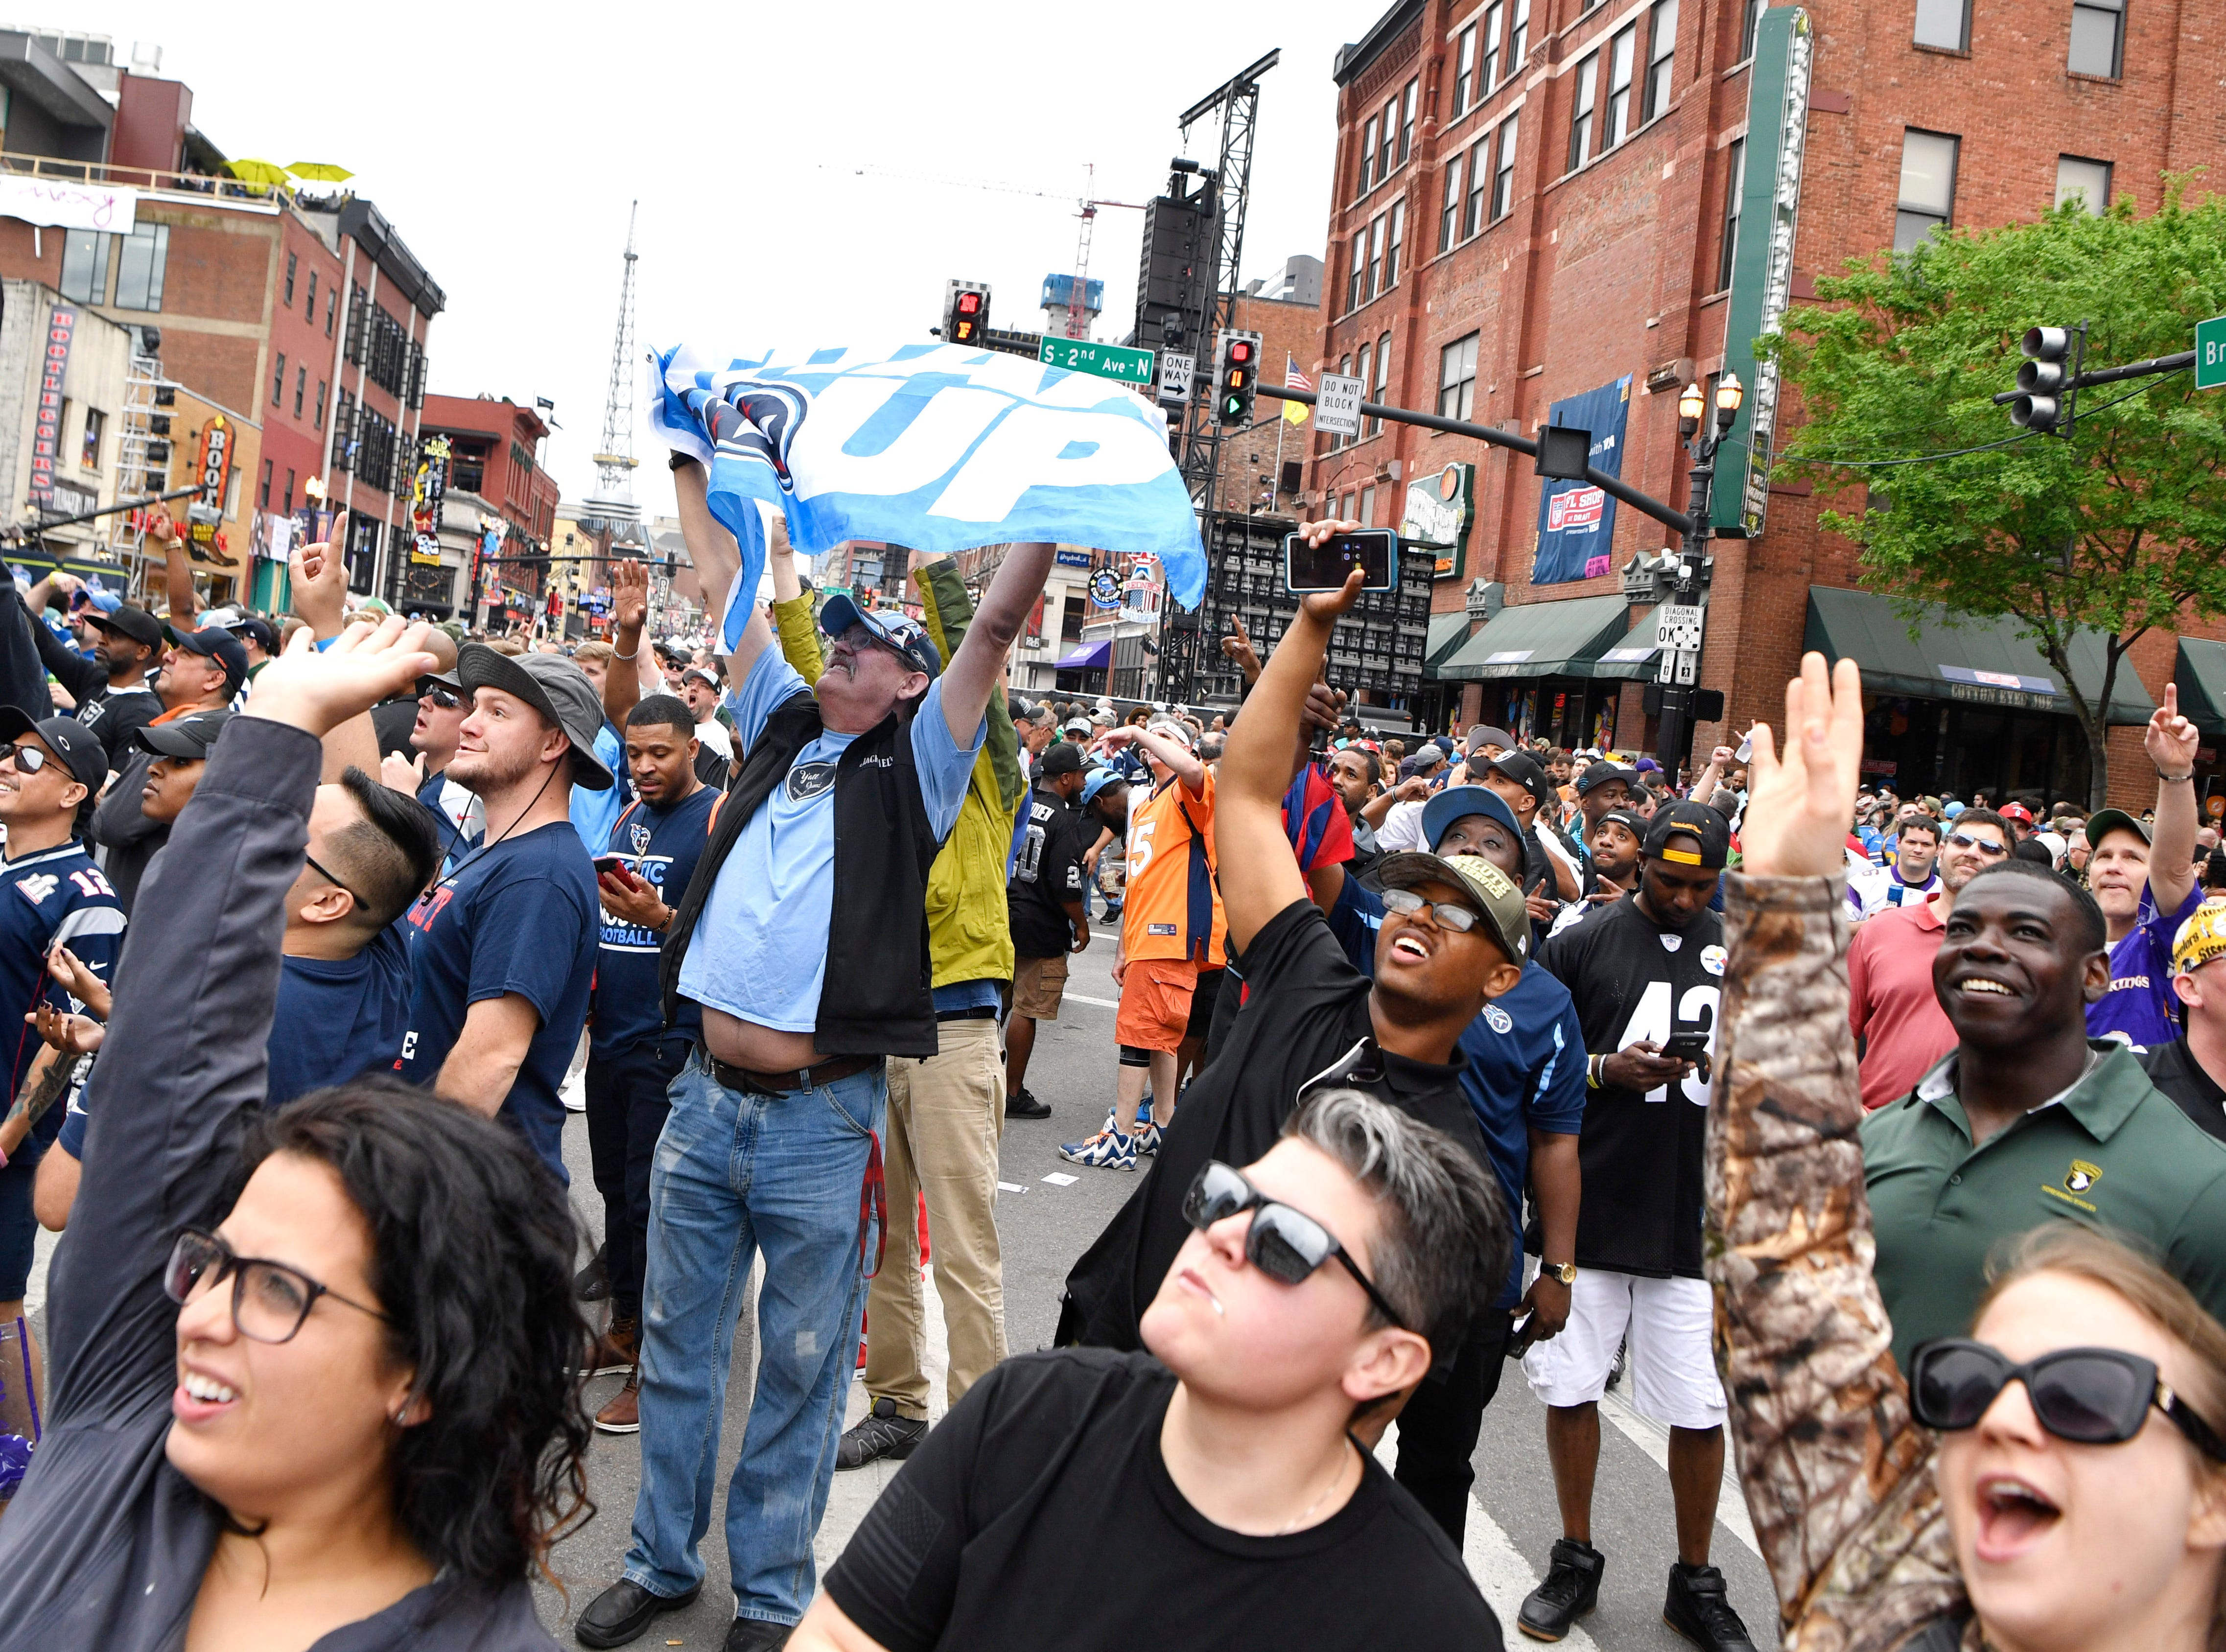 Fans cheer before the start of the first round of the NFL Draft Thursday, April 25, 2019 in Nashville, Tenn.